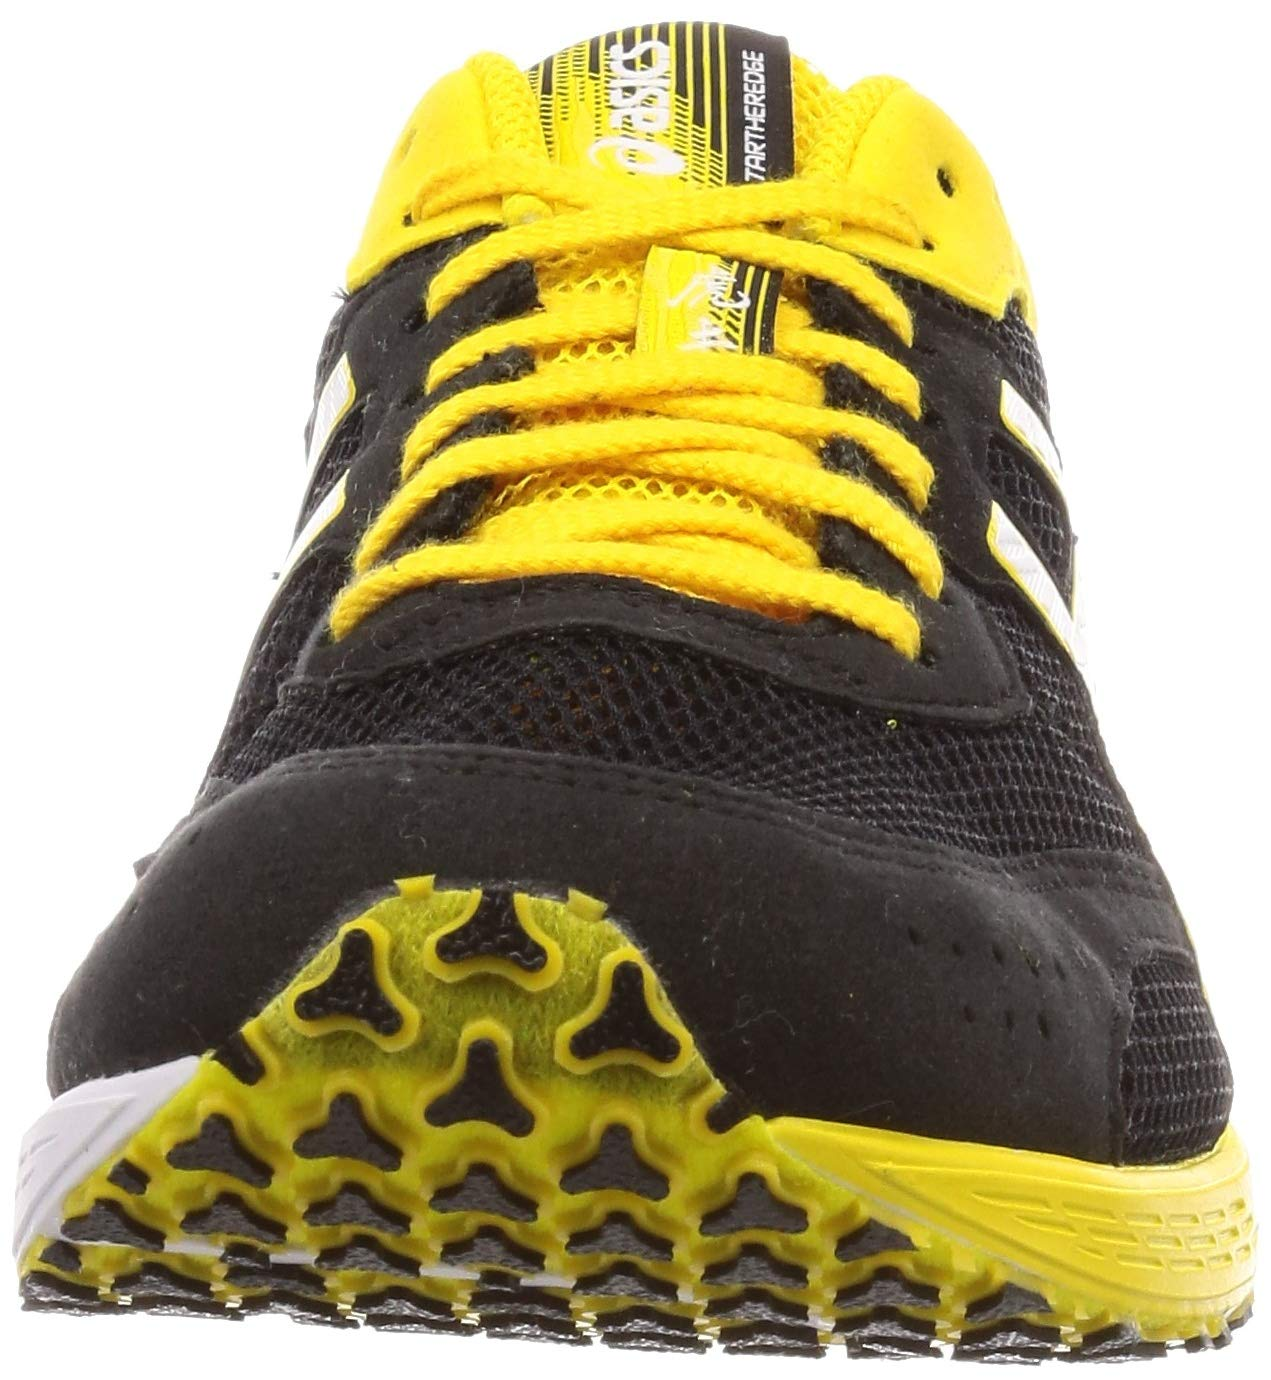 ASICS Tartheredge Uomo Giallo Nero: Amazon.it: Sport e tempo